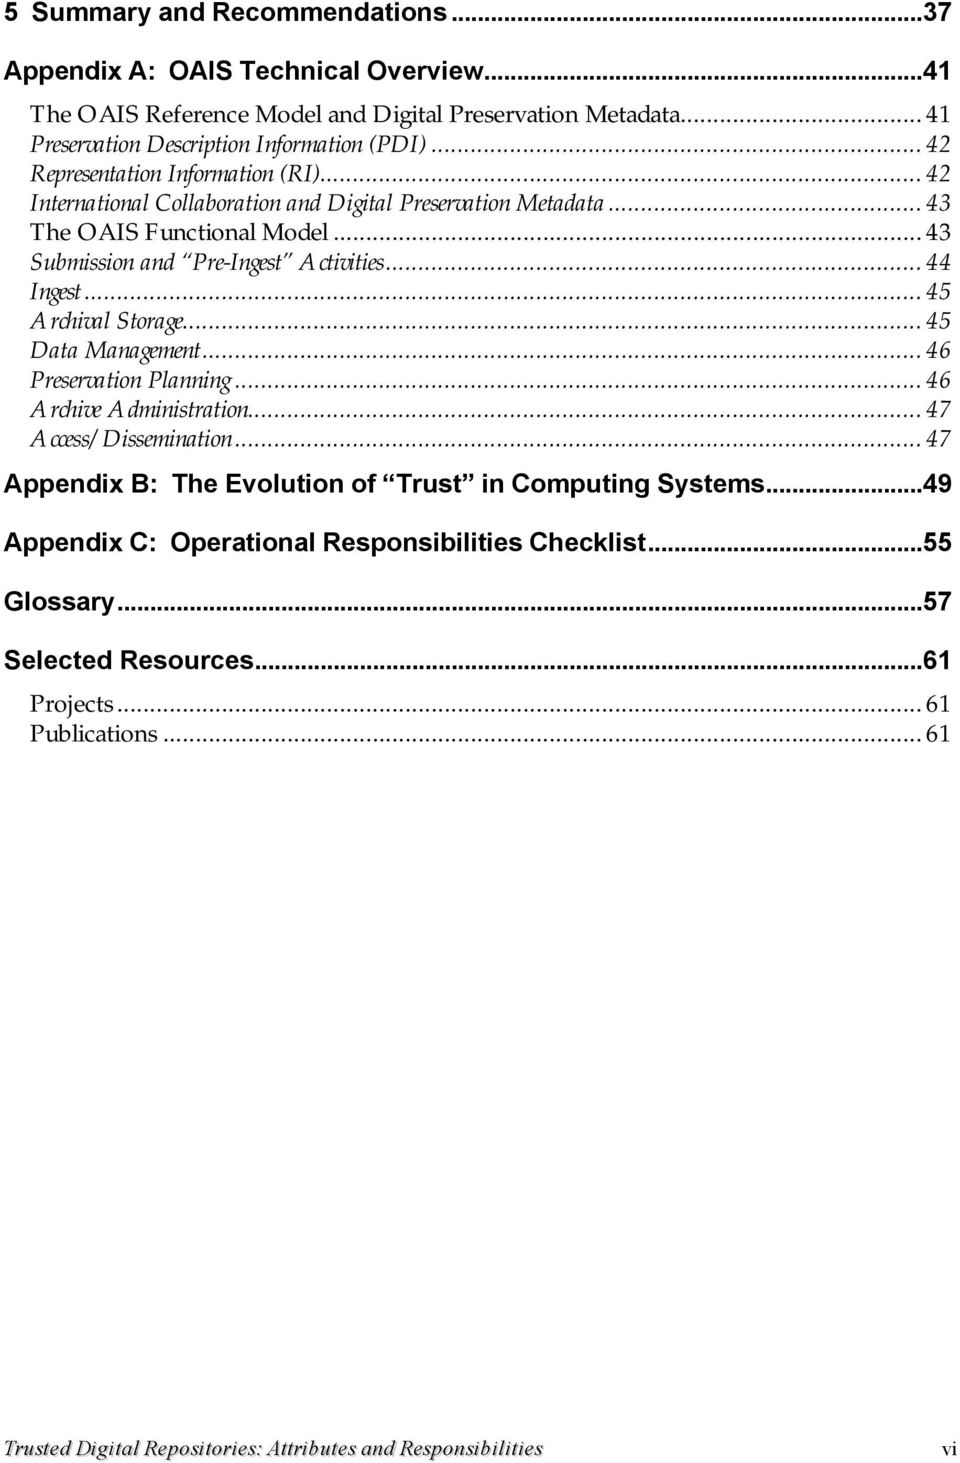 .. 45 Archival Storage... 45 Data Management... 46 Preservation Planning... 46 Archive Administration... 47 Access/Dissemination... 47 Appendix B: The Evolution of Trust in Computing Systems.